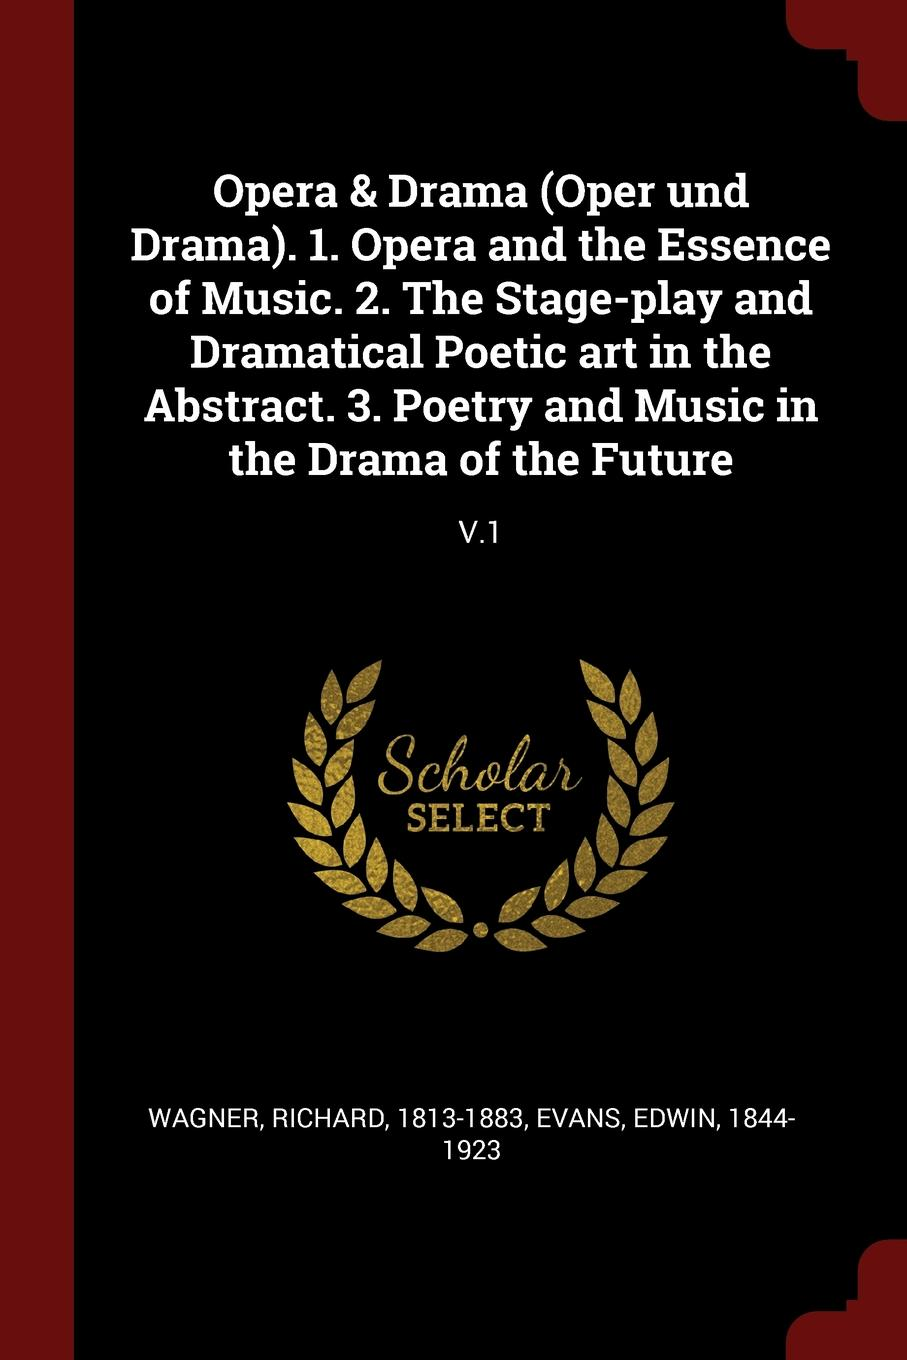 Richard Wagner, Edwin Evans Opera . Drama (Oper und Drama). 1. Opera and the Essence of Music. 2. The Stage-play and Dramatical Poetic art in the Abstract. 3. Poetry and Music in the Drama of the Future. V.1 heinrich wilsing richard wagner the mastersingers of nurnberg a guide to the music and the drama